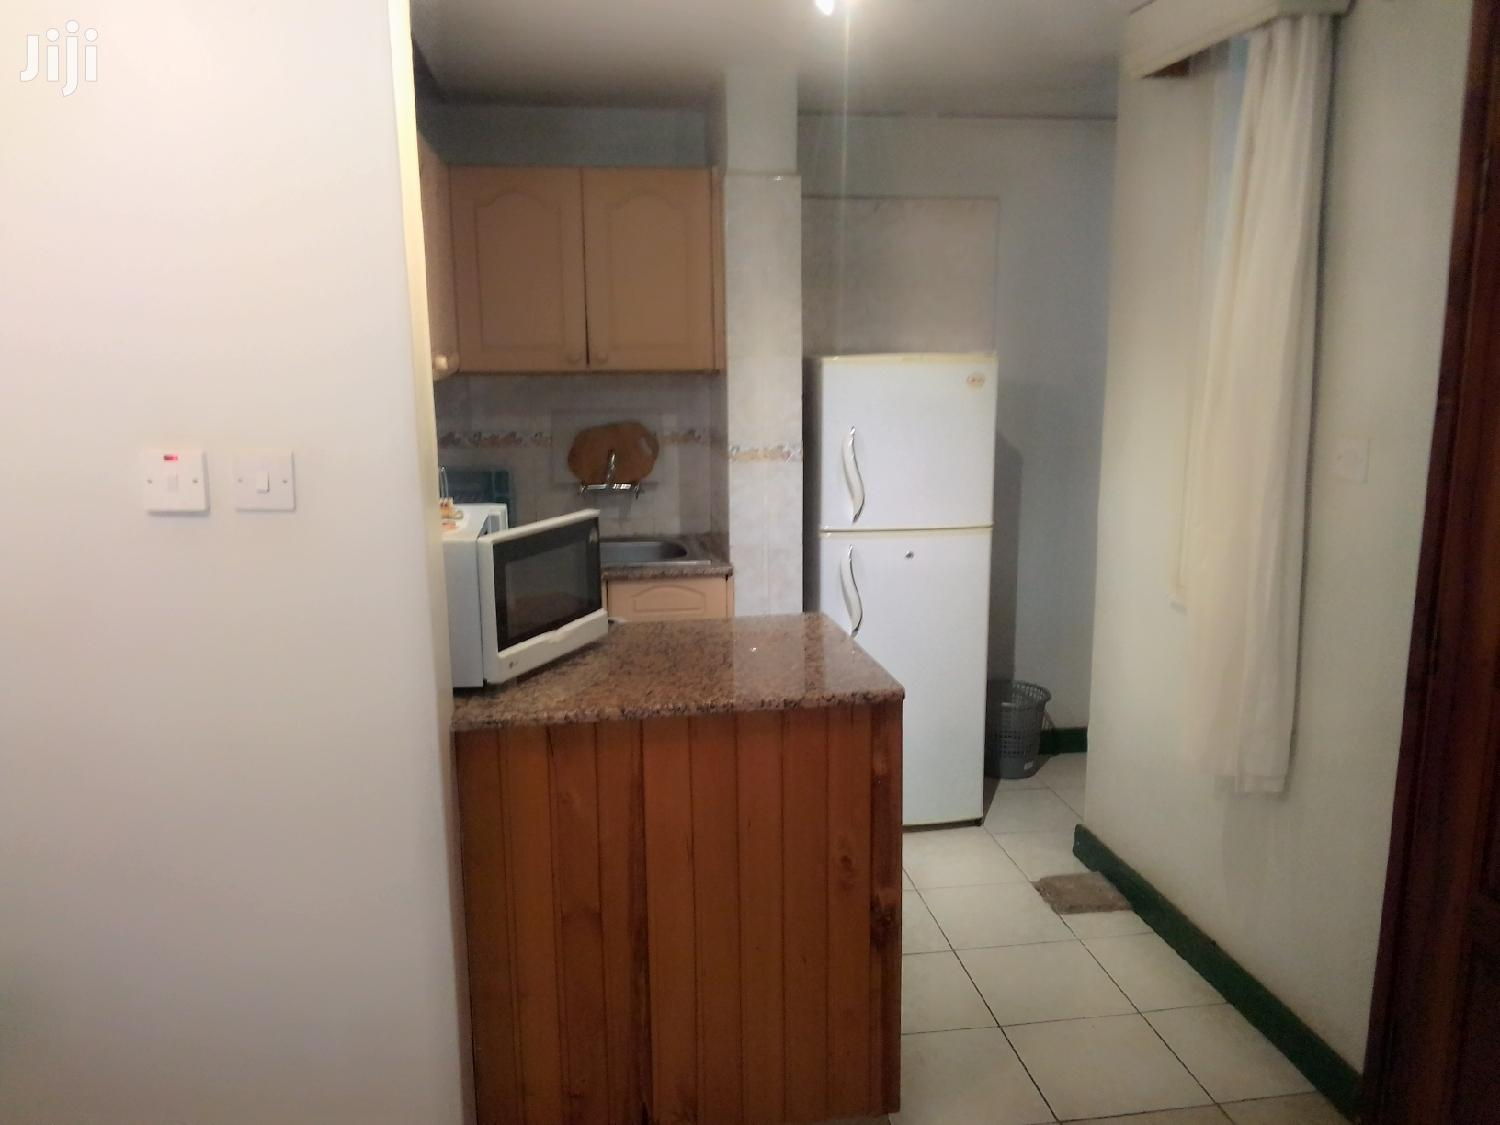 Studio For Rent In Valley Arcade | Houses & Apartments For Rent for sale in Lavington, Nairobi, Kenya